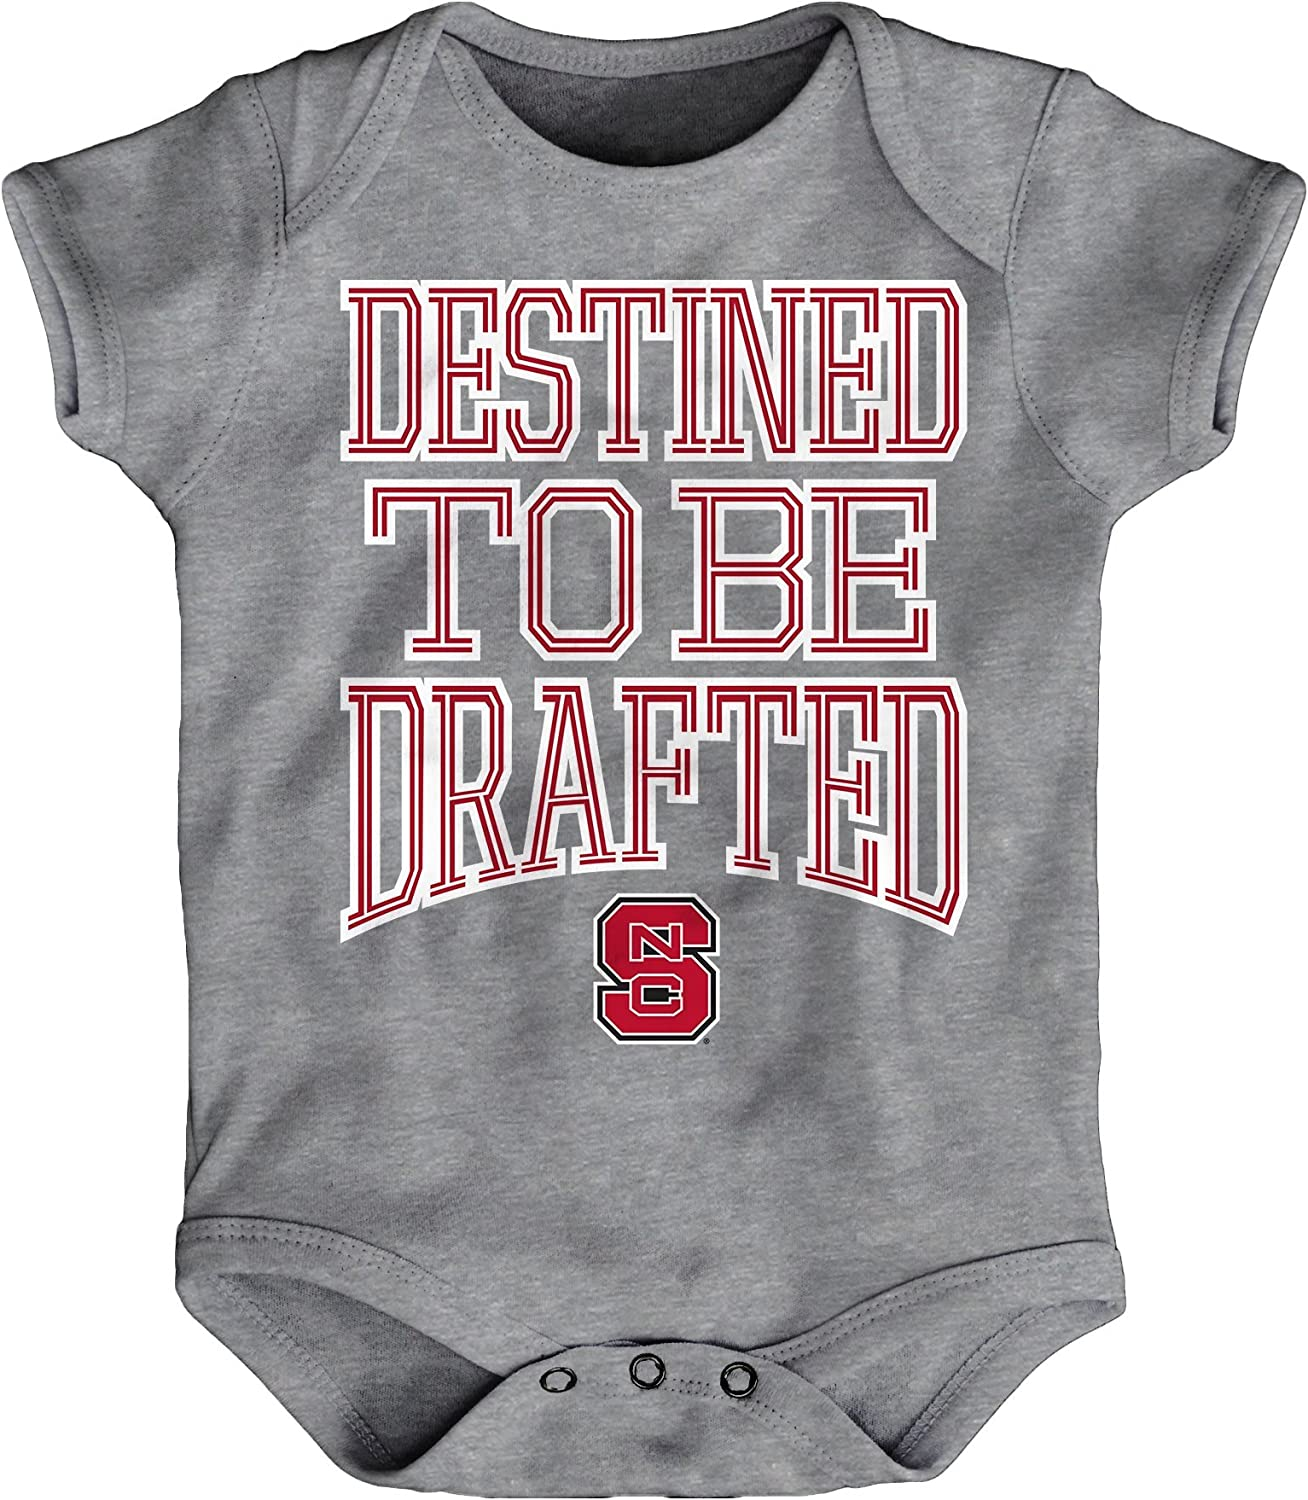 NCAA by Outerstuff NCAA North Carolina State Wolfpack Newborn /& Infant Destined Short Sleeve Bodysuit 12 Months Heather Grey